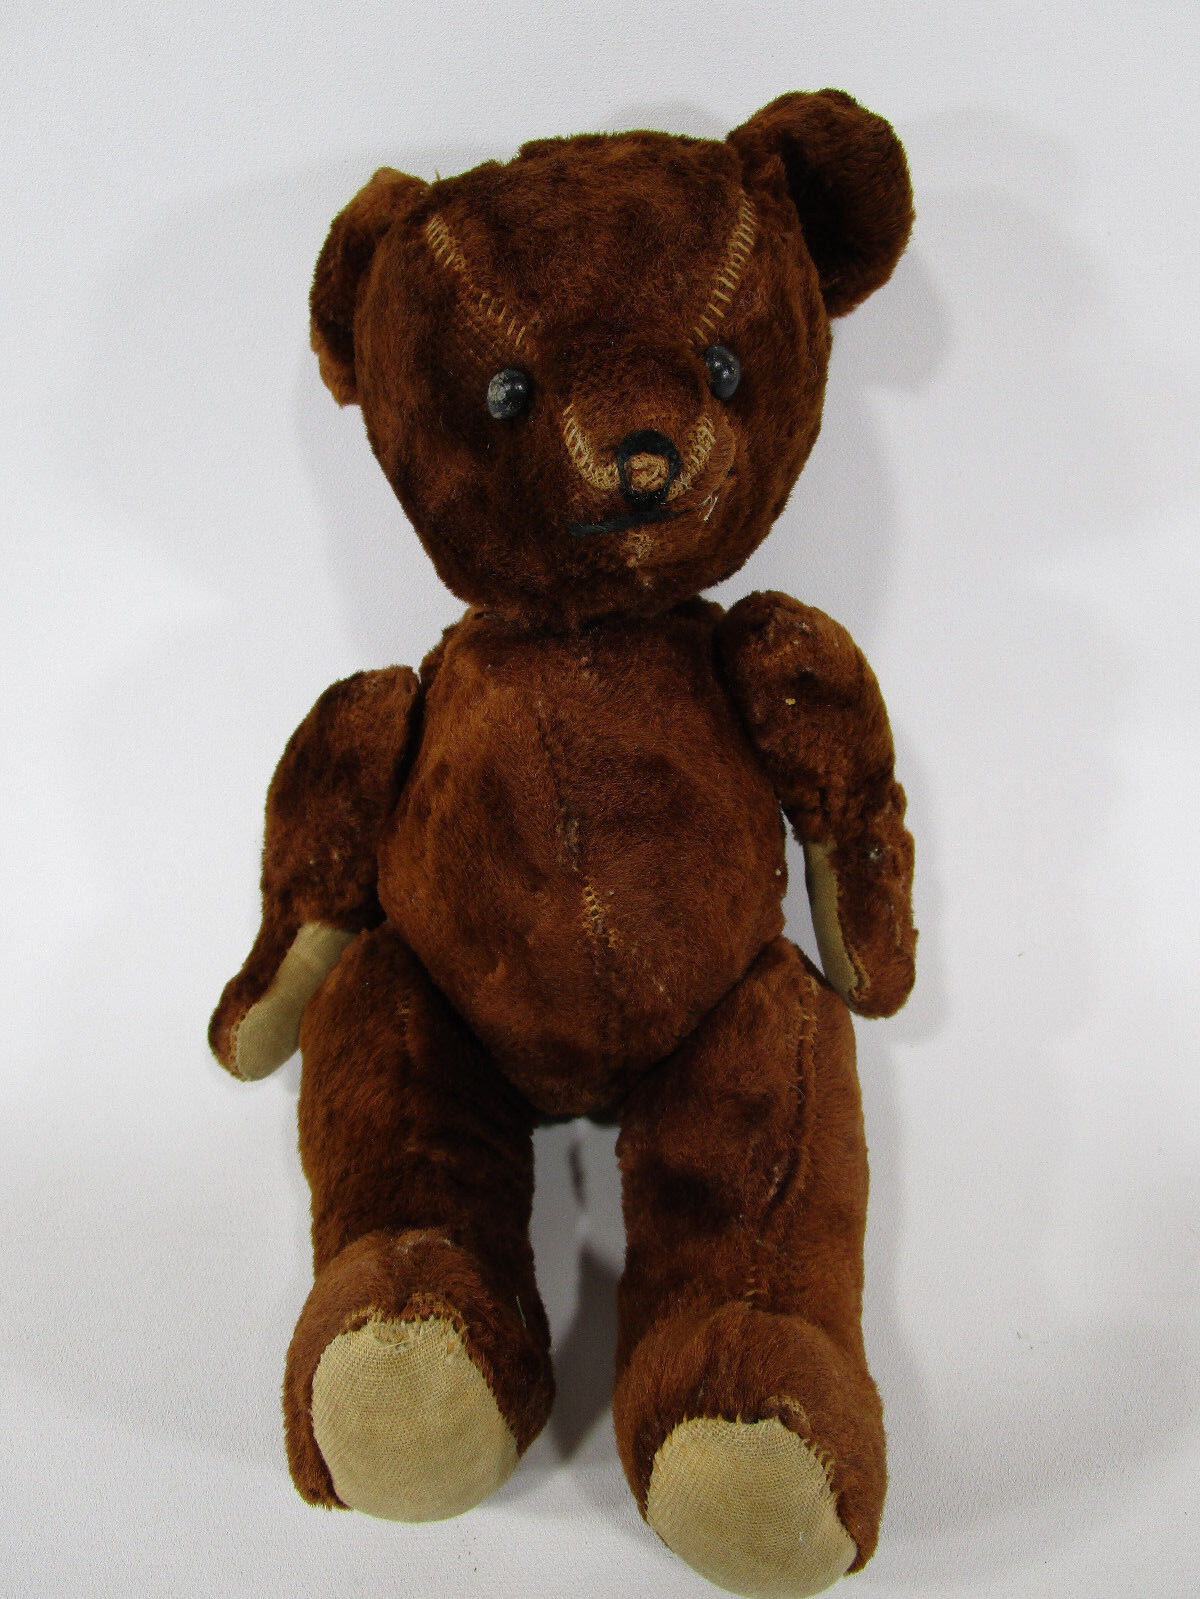 Antique jointed teddy bear vintage unmarked